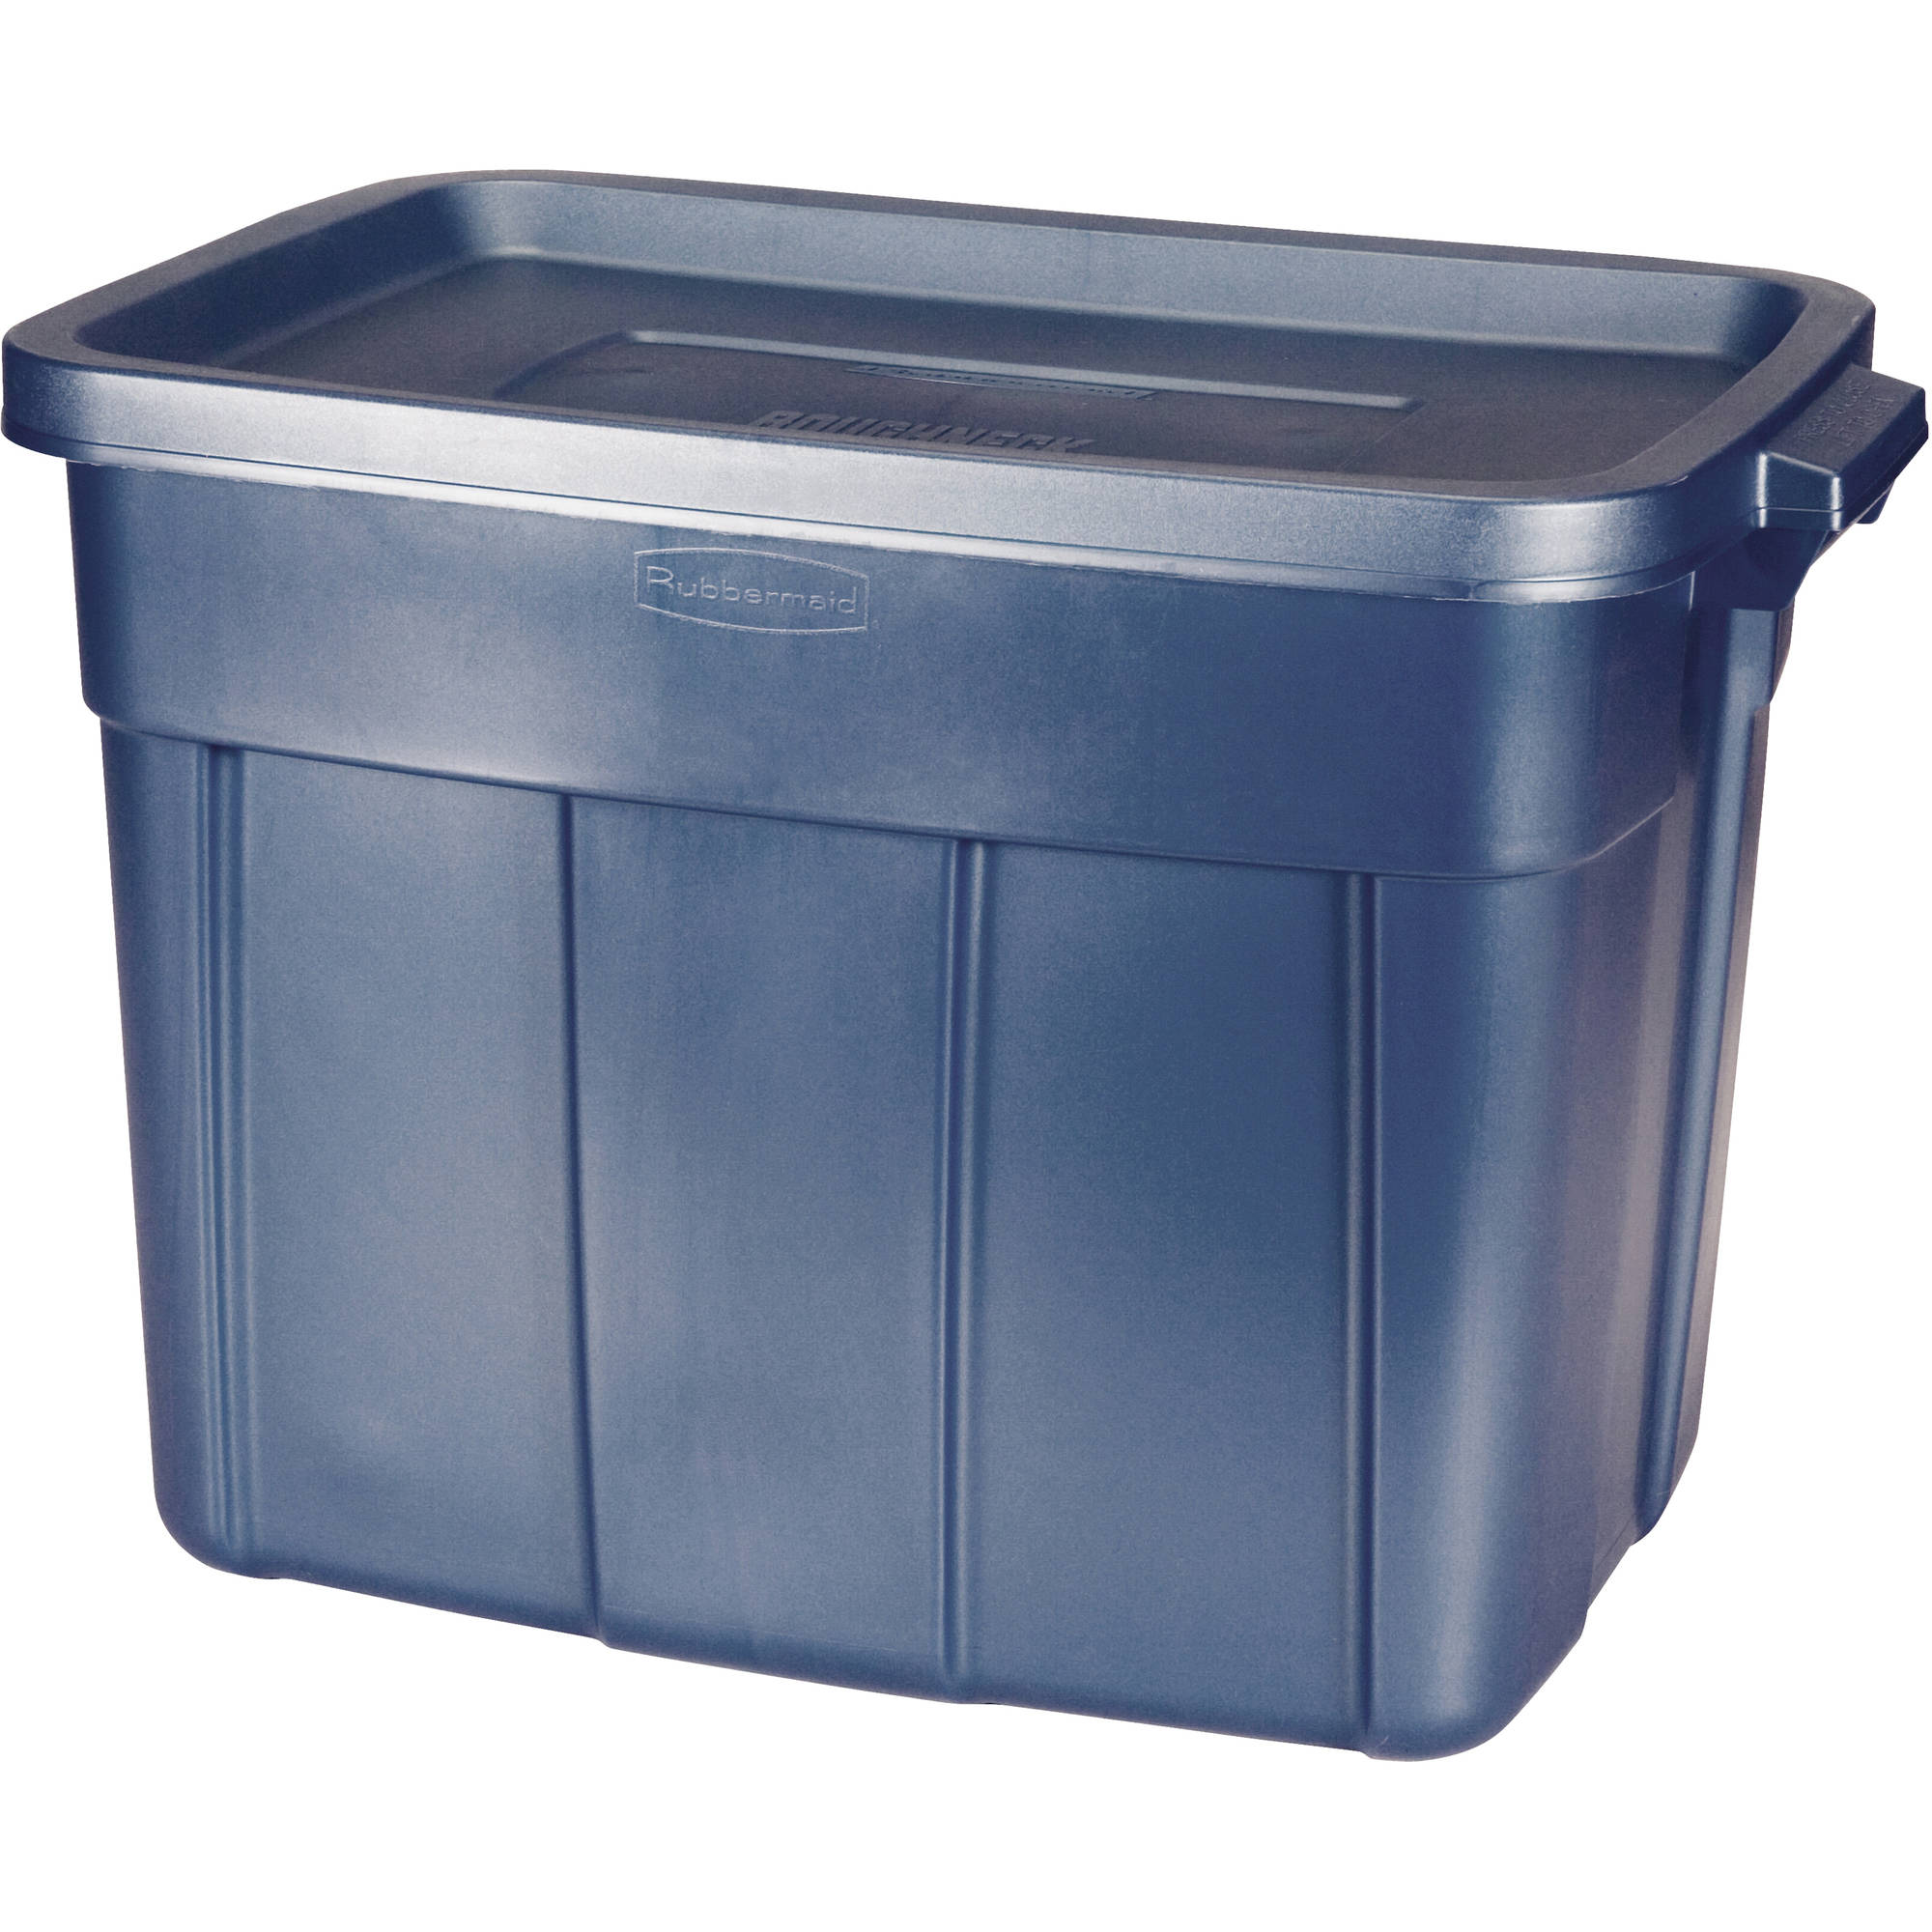 Rubbermaid Roughneck Storage Box, 18 gal, Dark Indigo Metallic, Set of 12